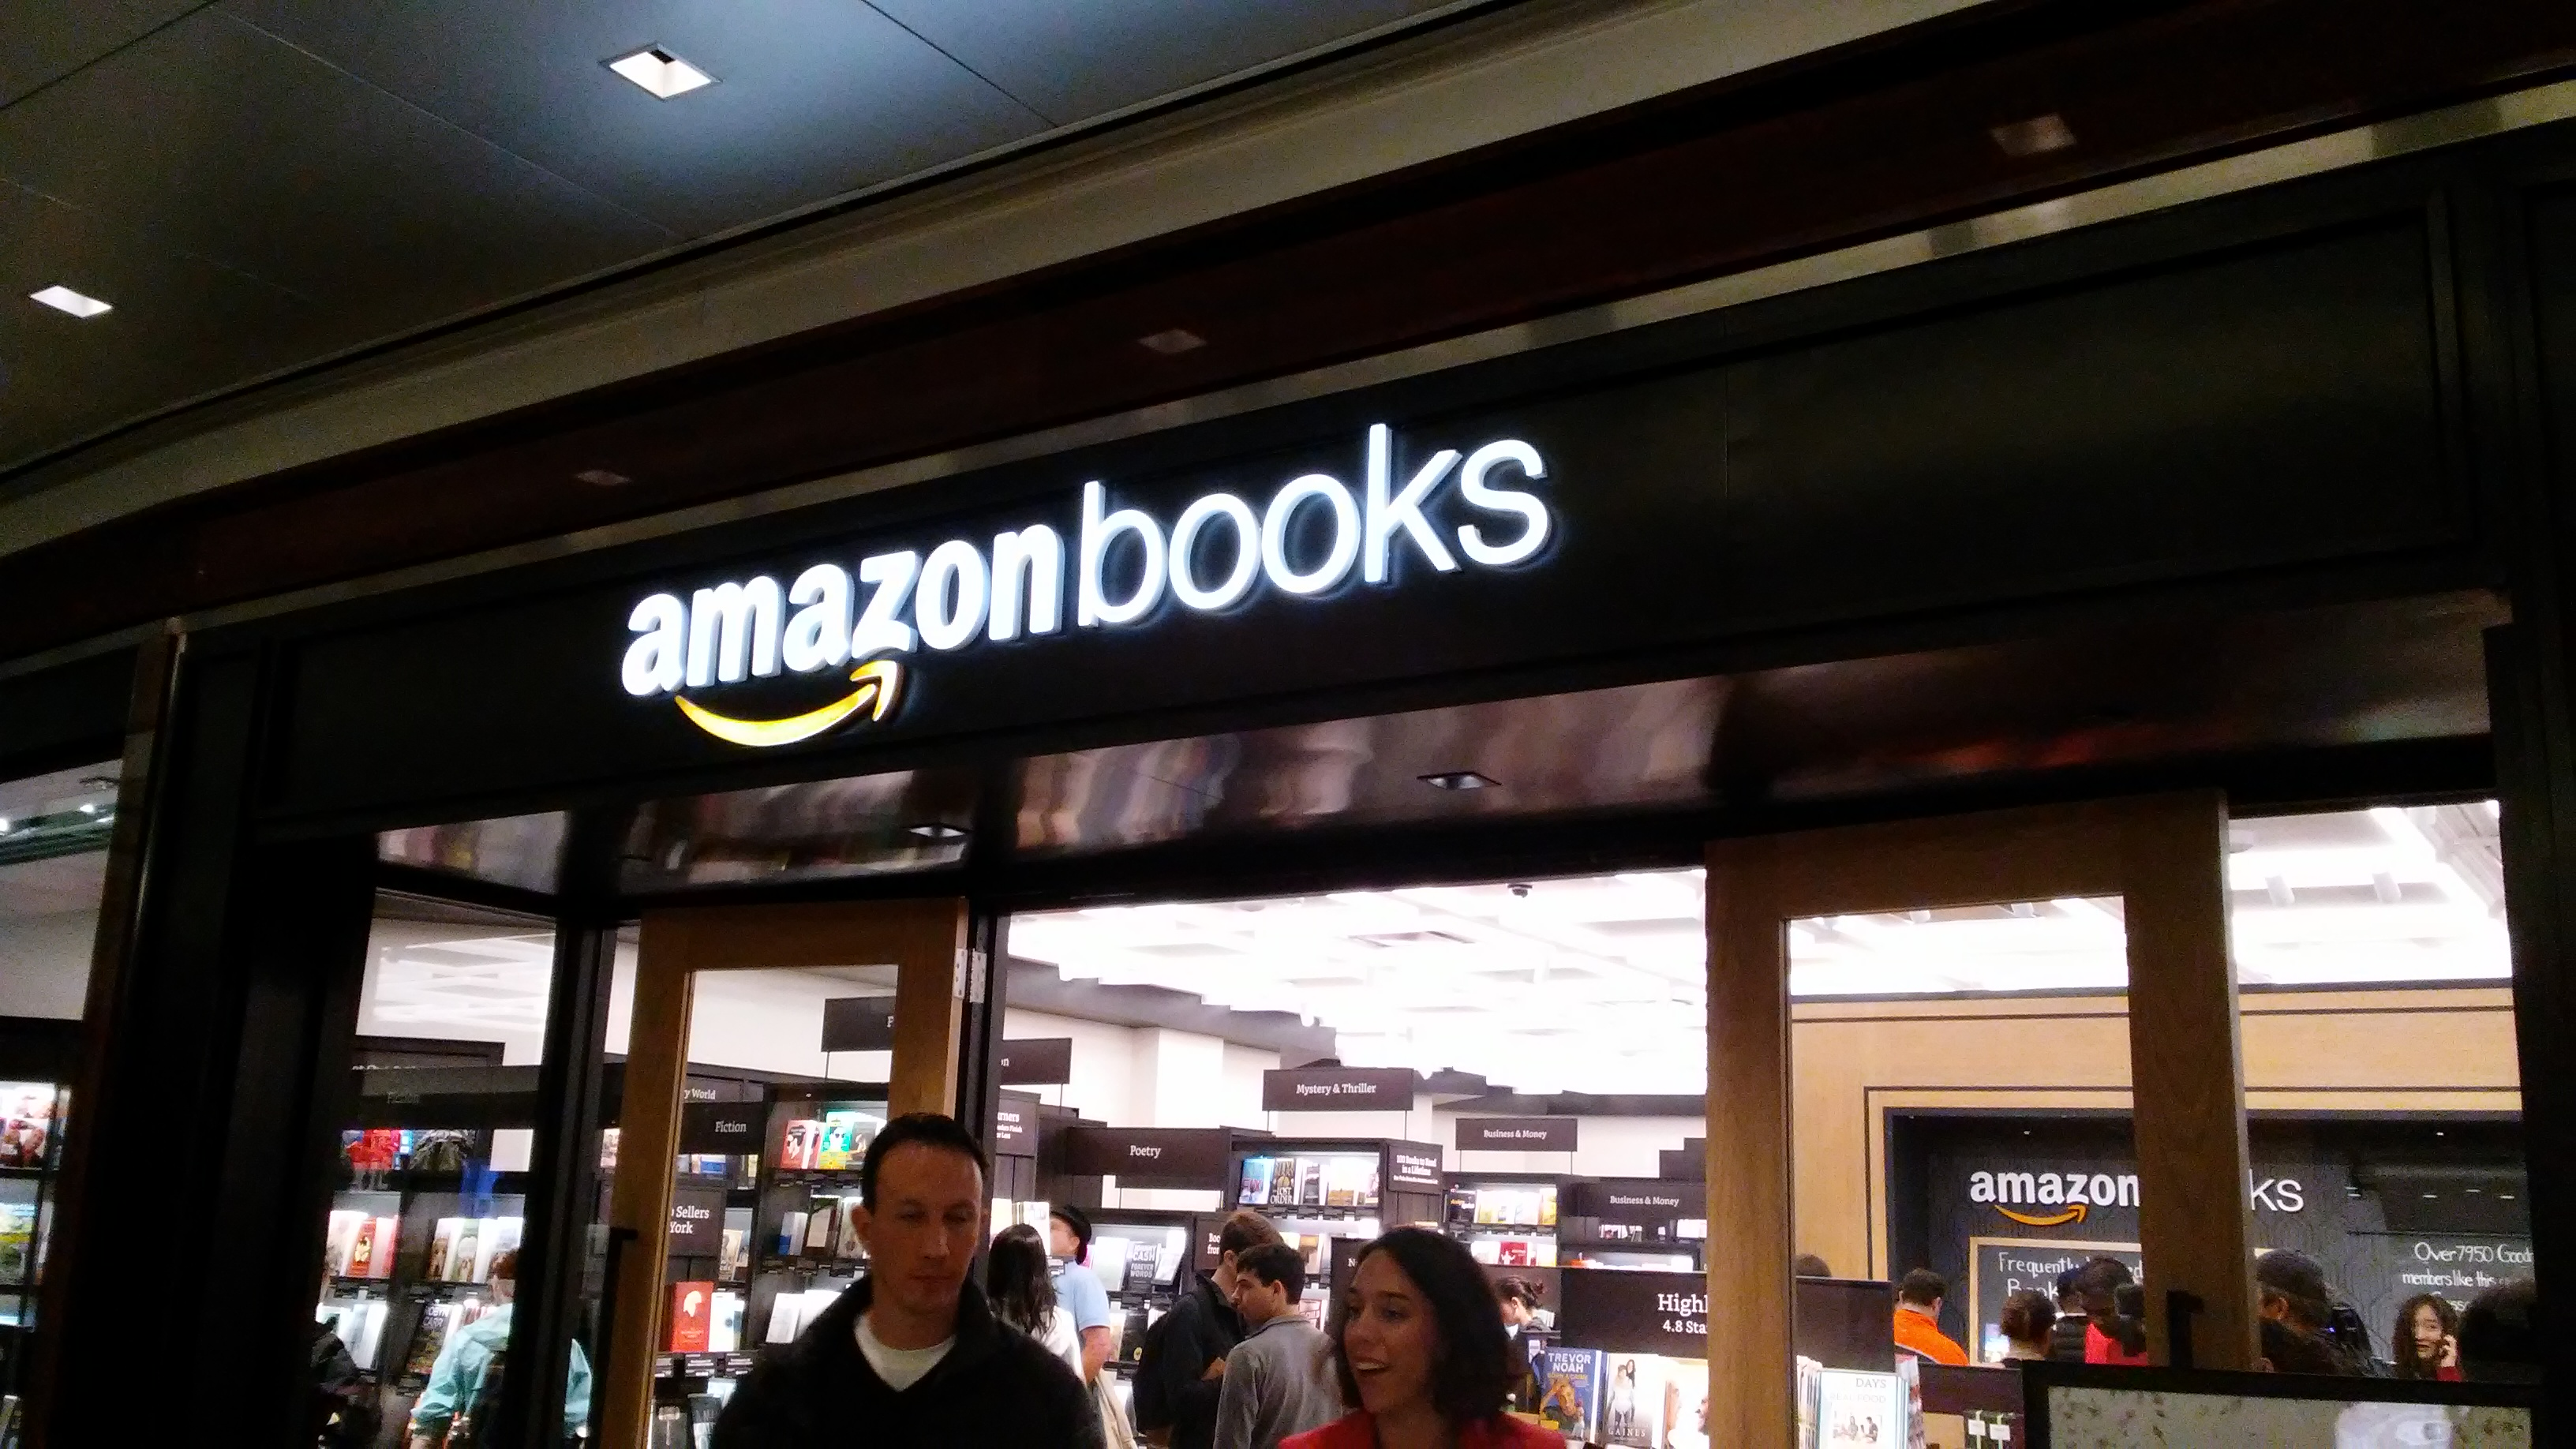 Amazon Books in New York